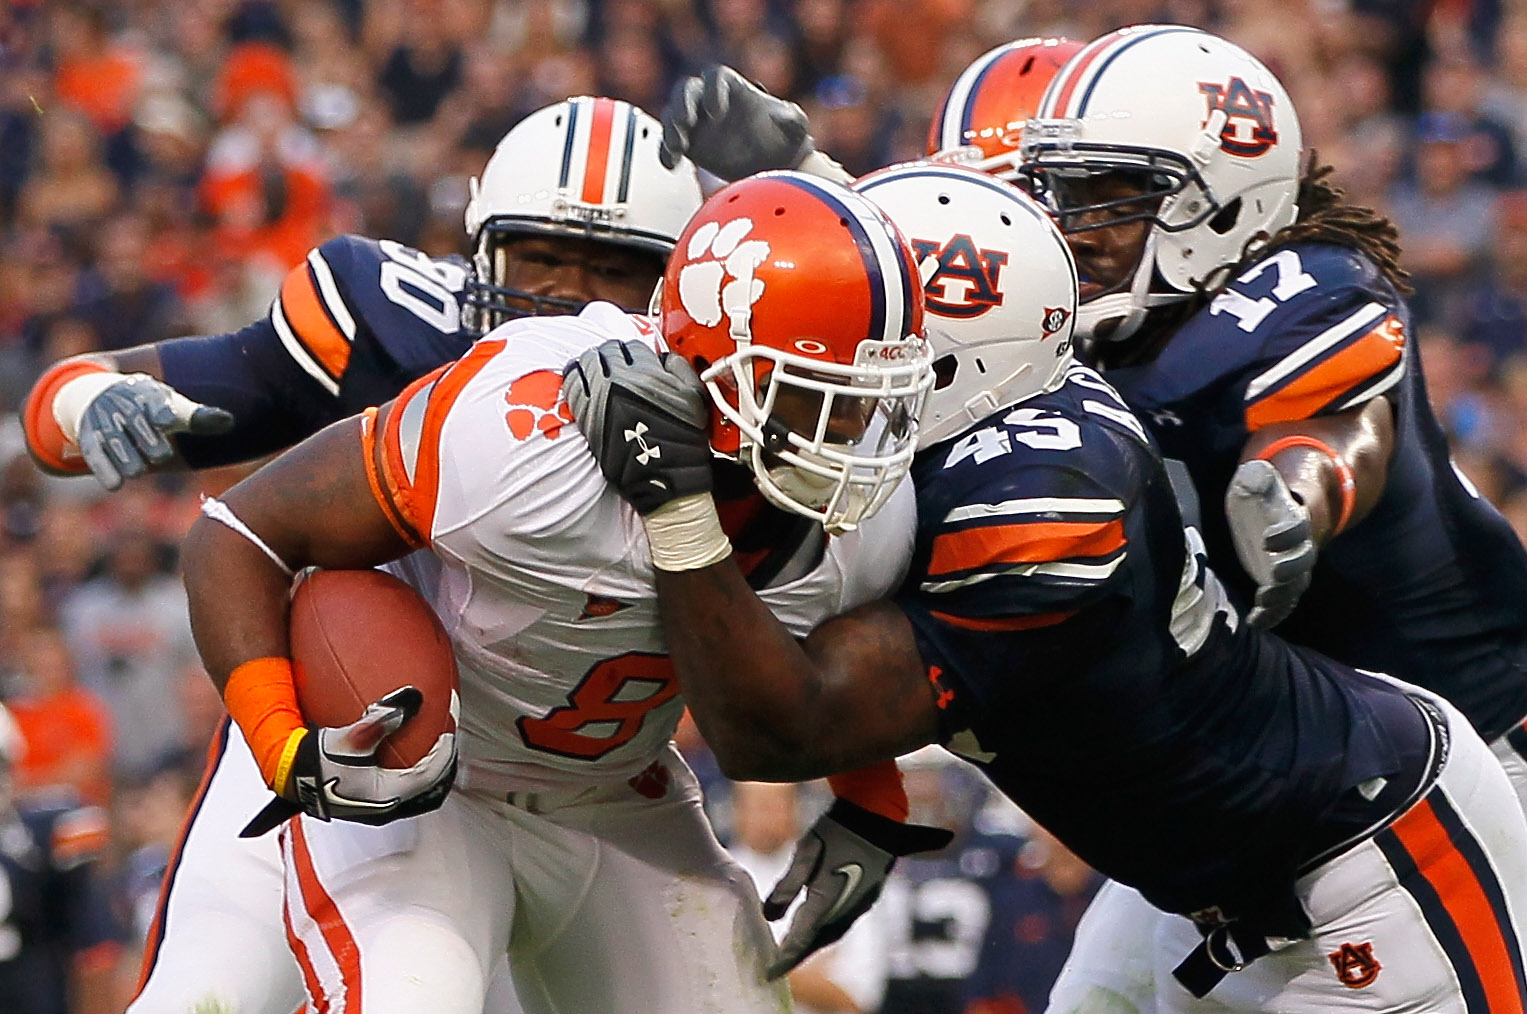 AUBURN, AL - SEPTEMBER 18:  Jamie Harper #8 of the Clemson Tigers is tackled by Nick Fairley #90, Antoine Carter #45 and Josh Bynes #17 of the Auburn Tigers at Jordan-Hare Stadium on September 18, 2010 in Auburn, Alabama.  (Photo by Kevin C. Cox/Getty Ima